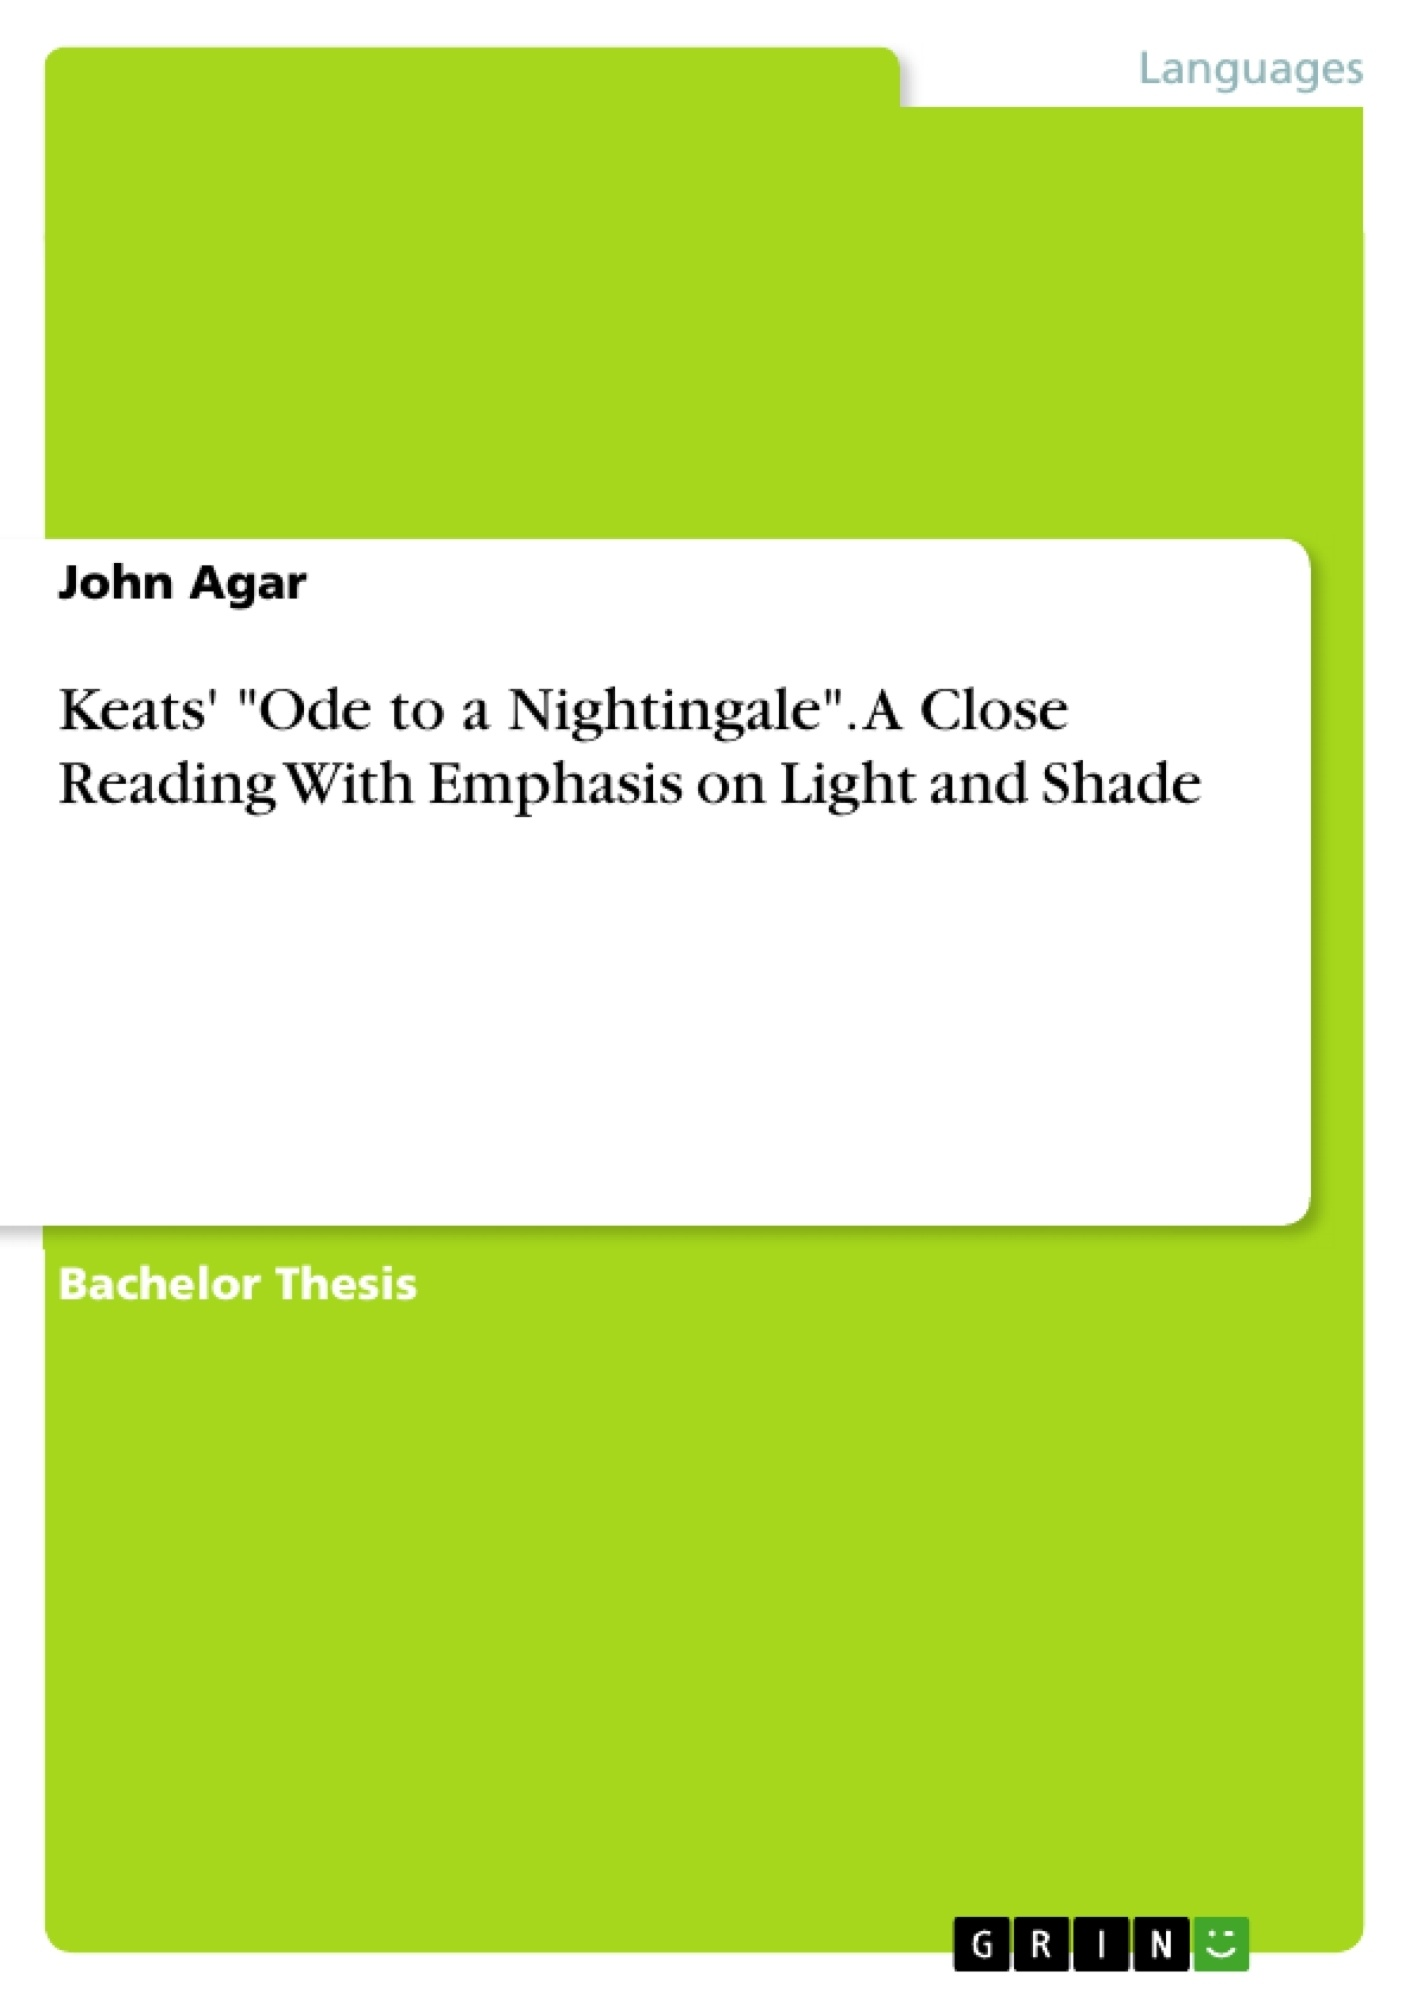 keats ode to a nightingale a close reading emphasis on  upload your own papers earn money and win an iphone x